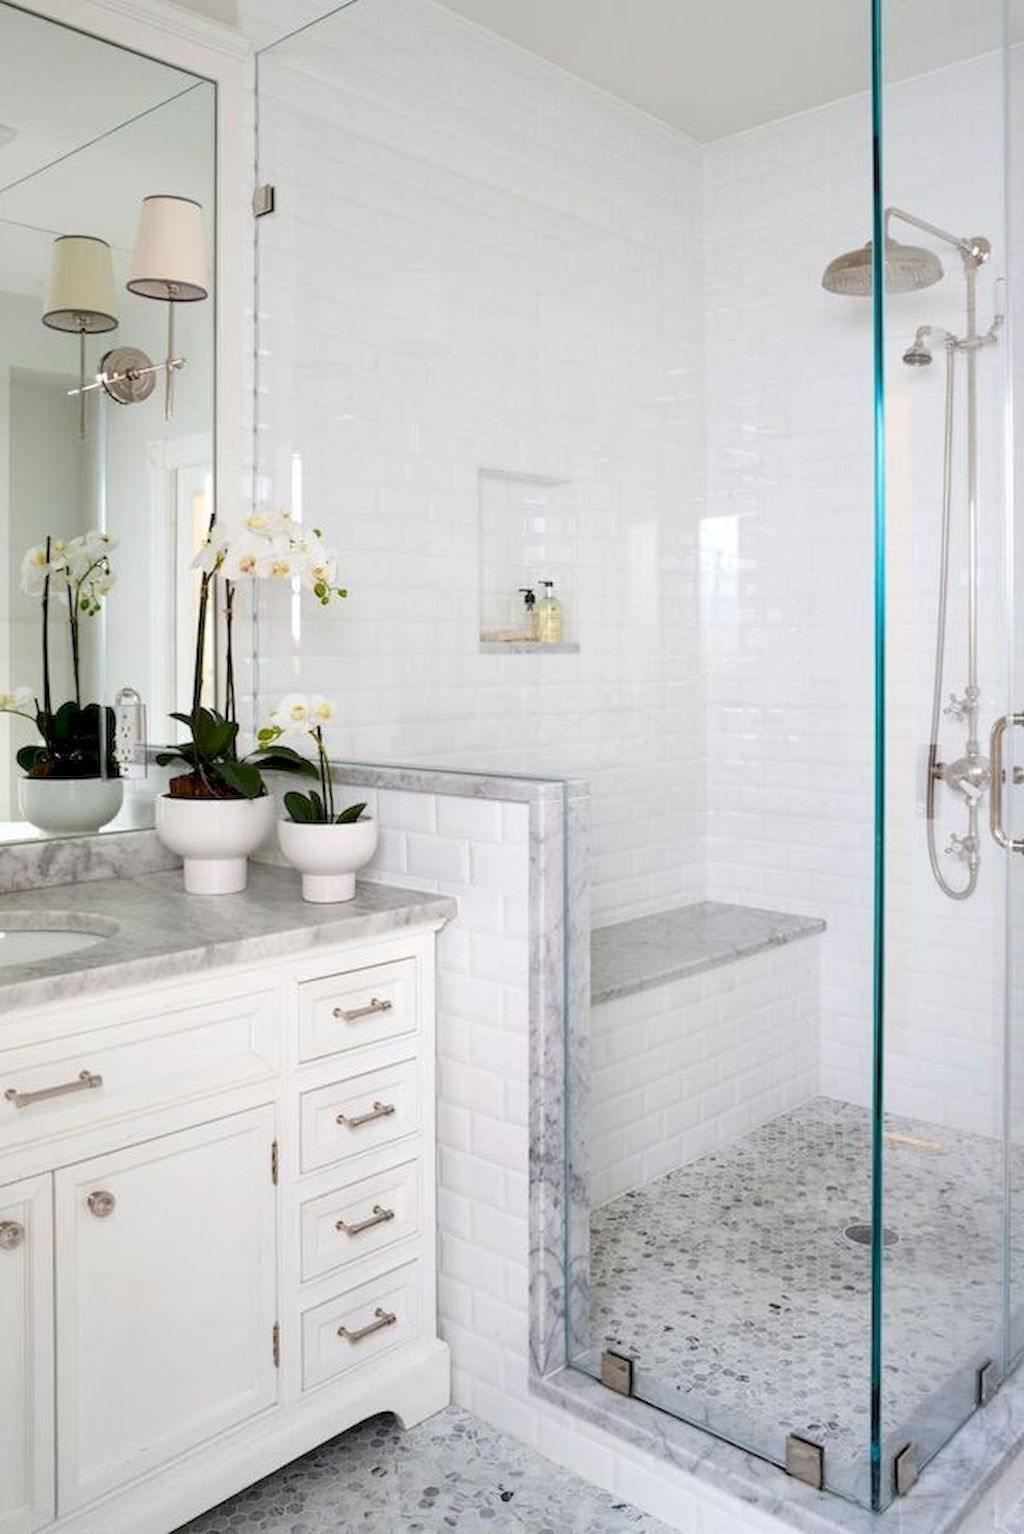 55 Cool Small Master Bathroom Remodel Ideas Homeastern Com Minimalist Small Bathrooms Small Bathroom Remodel Bathroom Remodel Shower